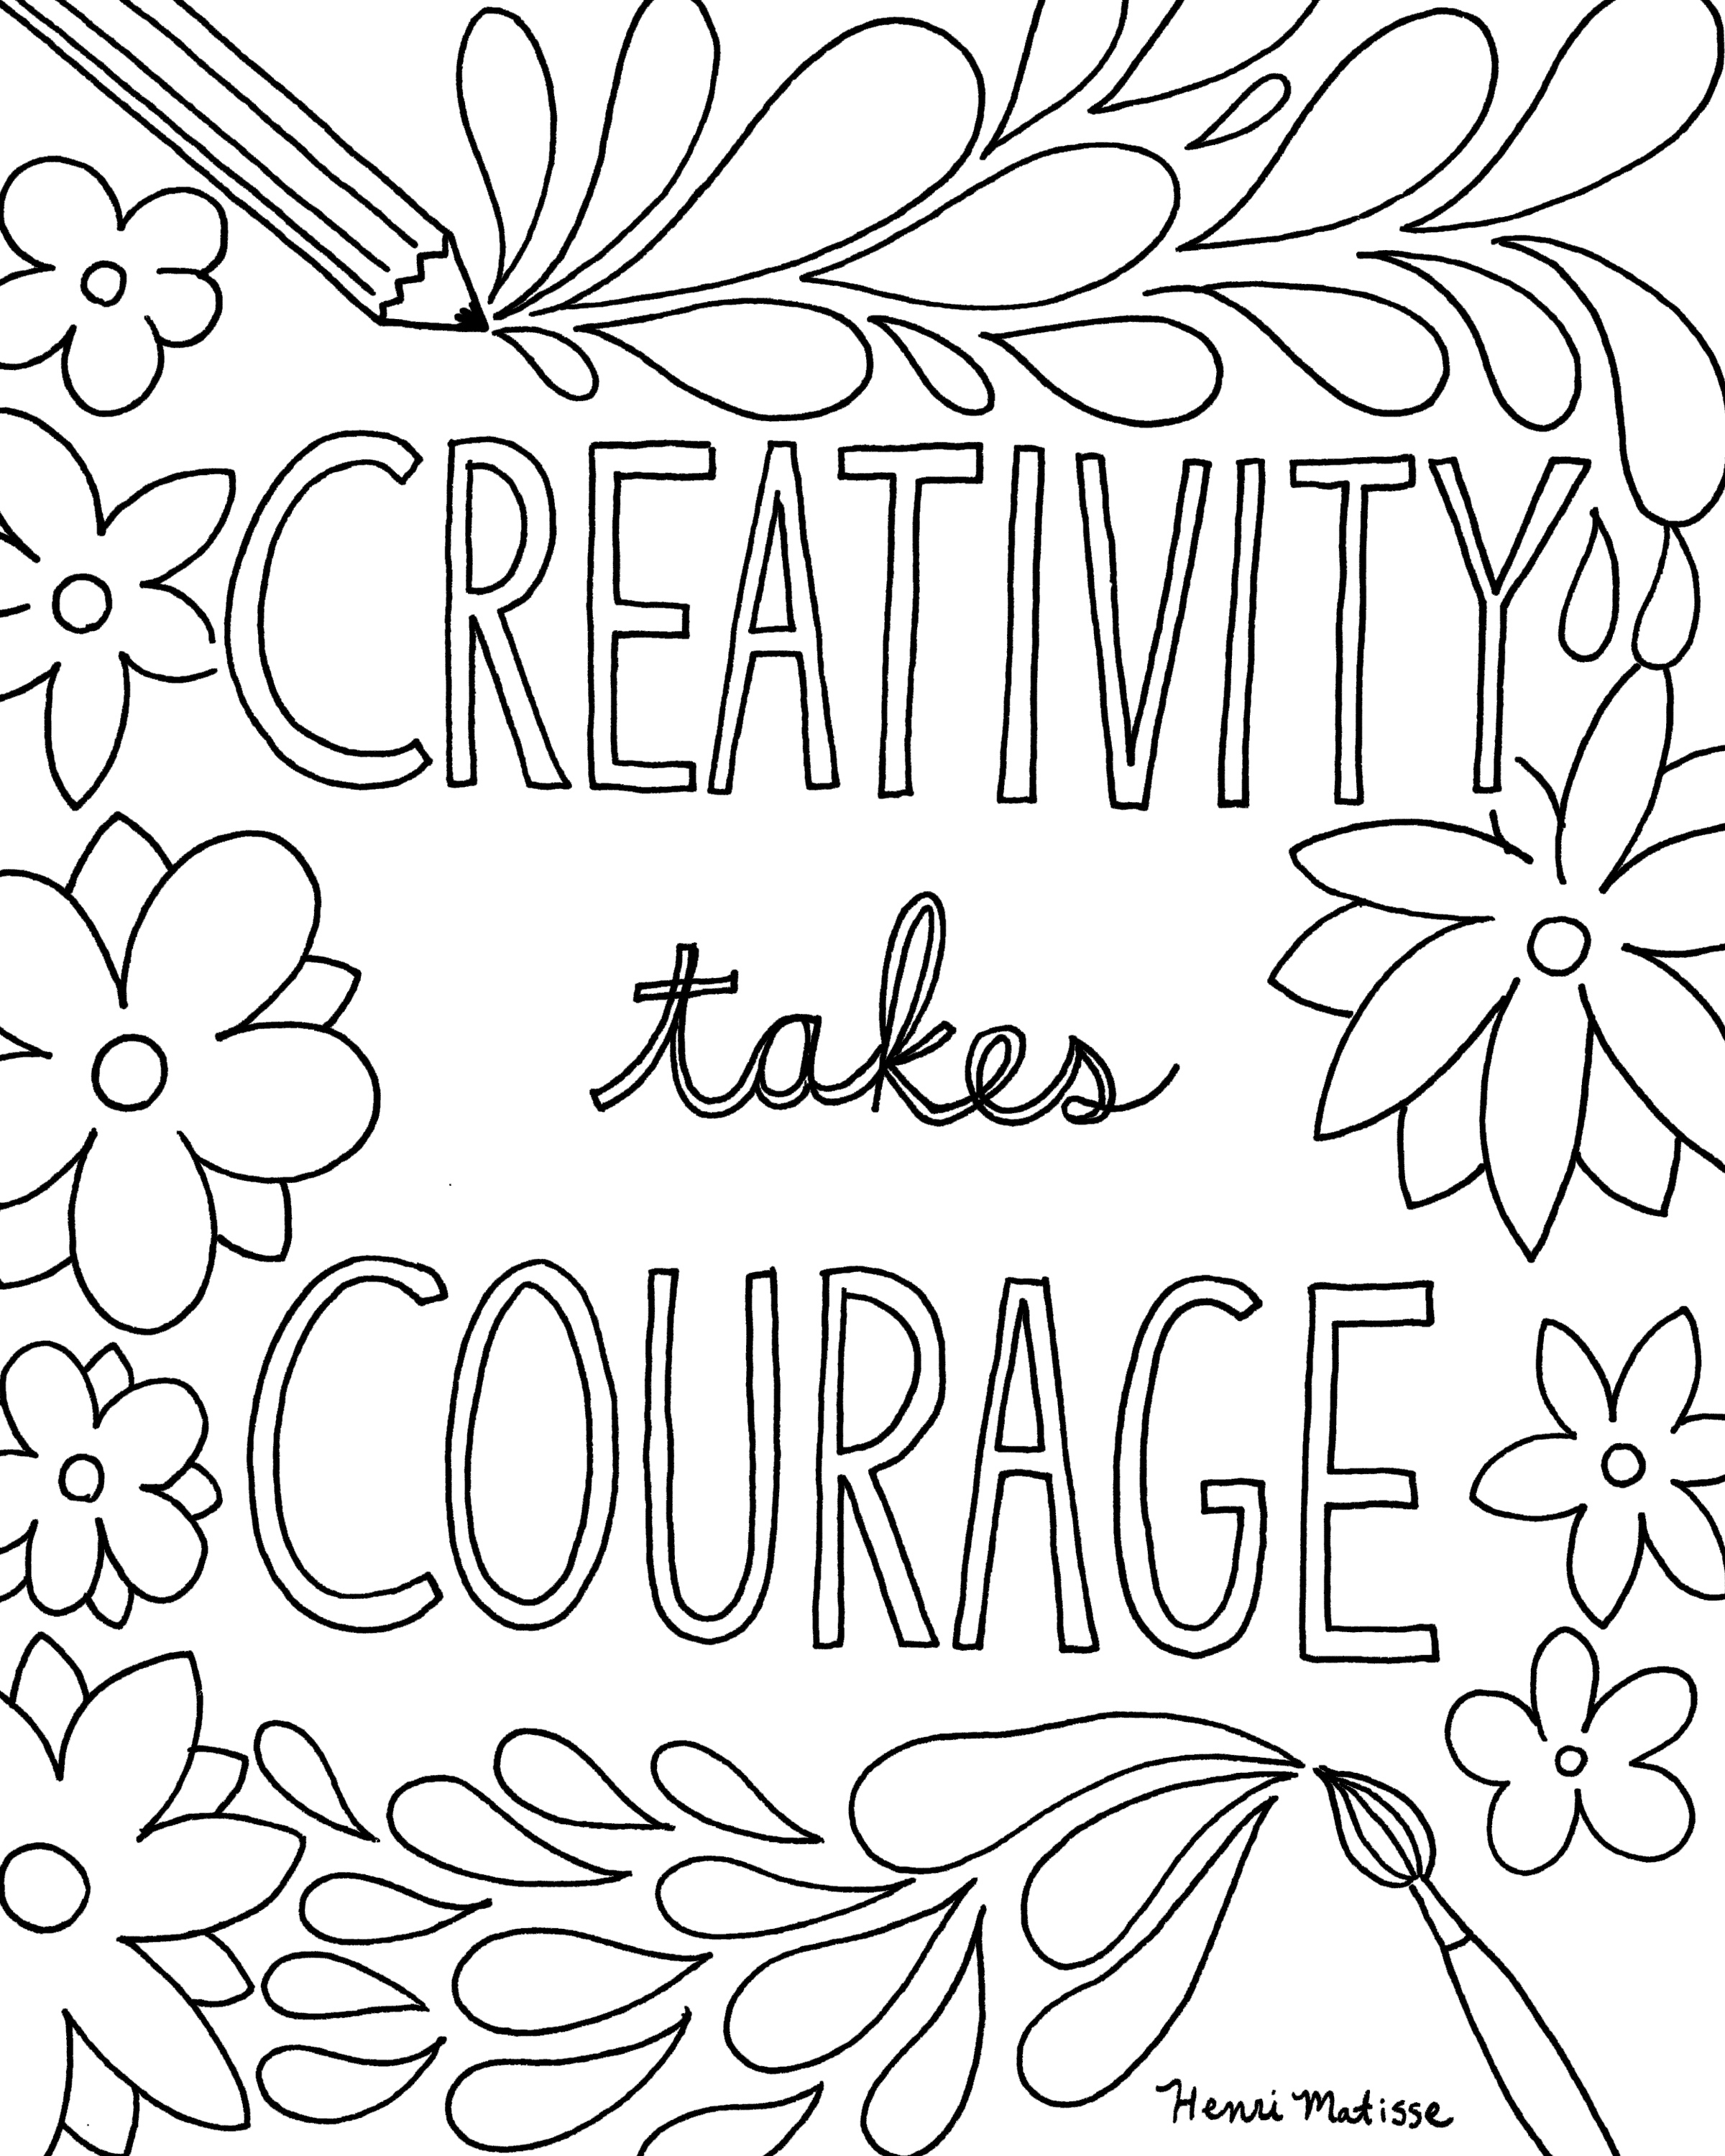 kids quote coloring pages create something wonderful colouring page a colouring kids coloring quote pages